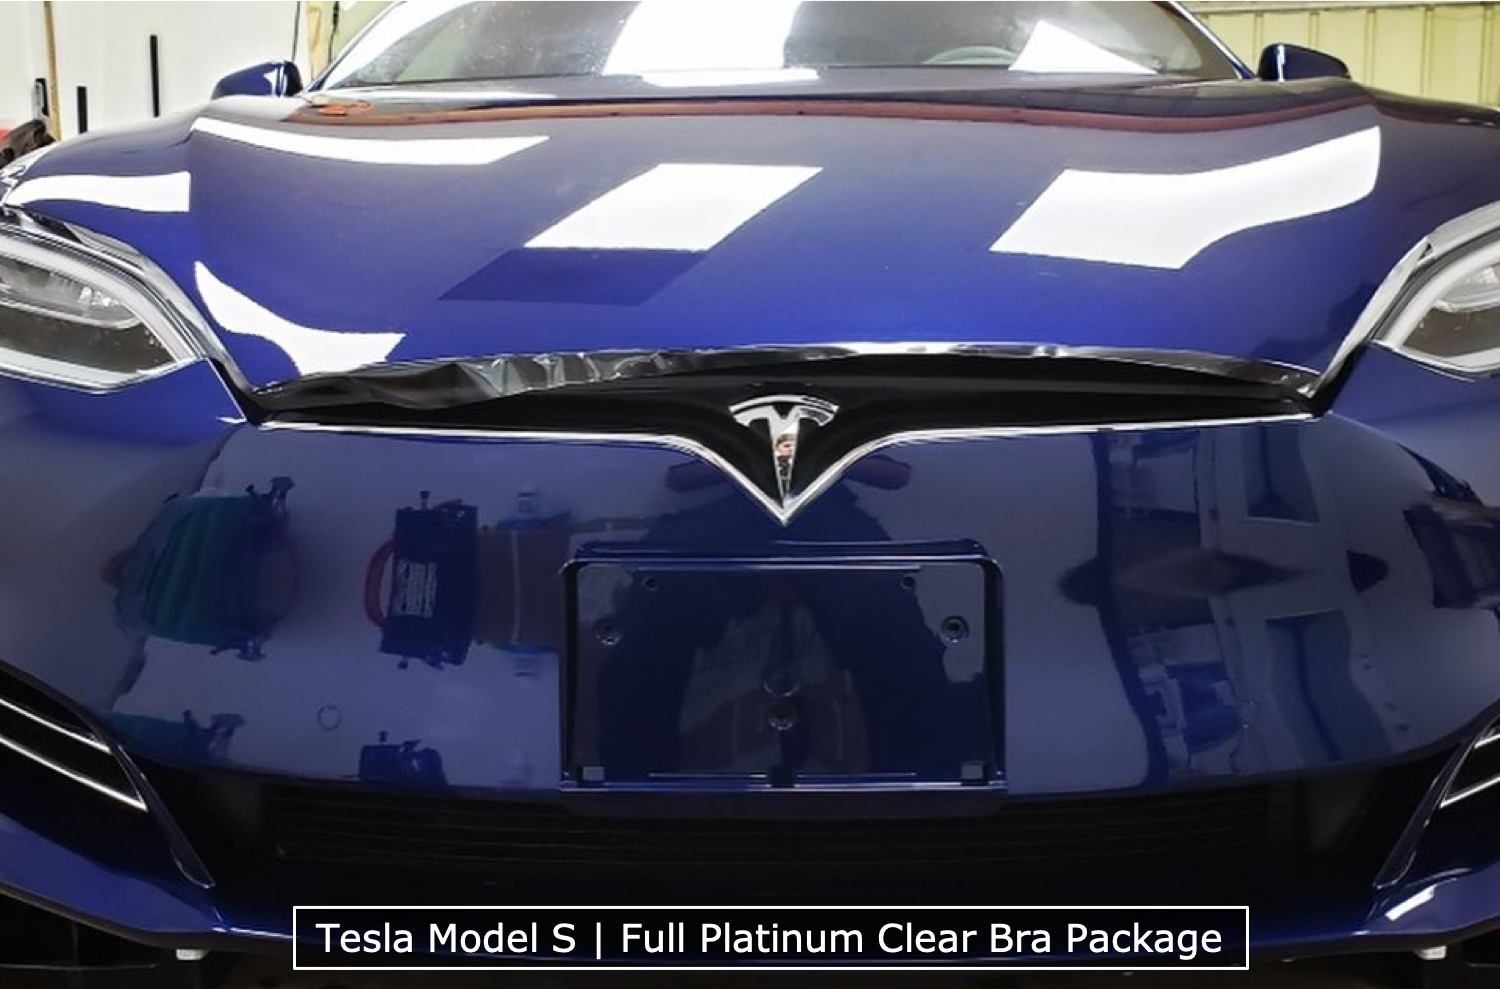 Full Platinum Clear Bra Package On Tesla By Denver Auto Tint